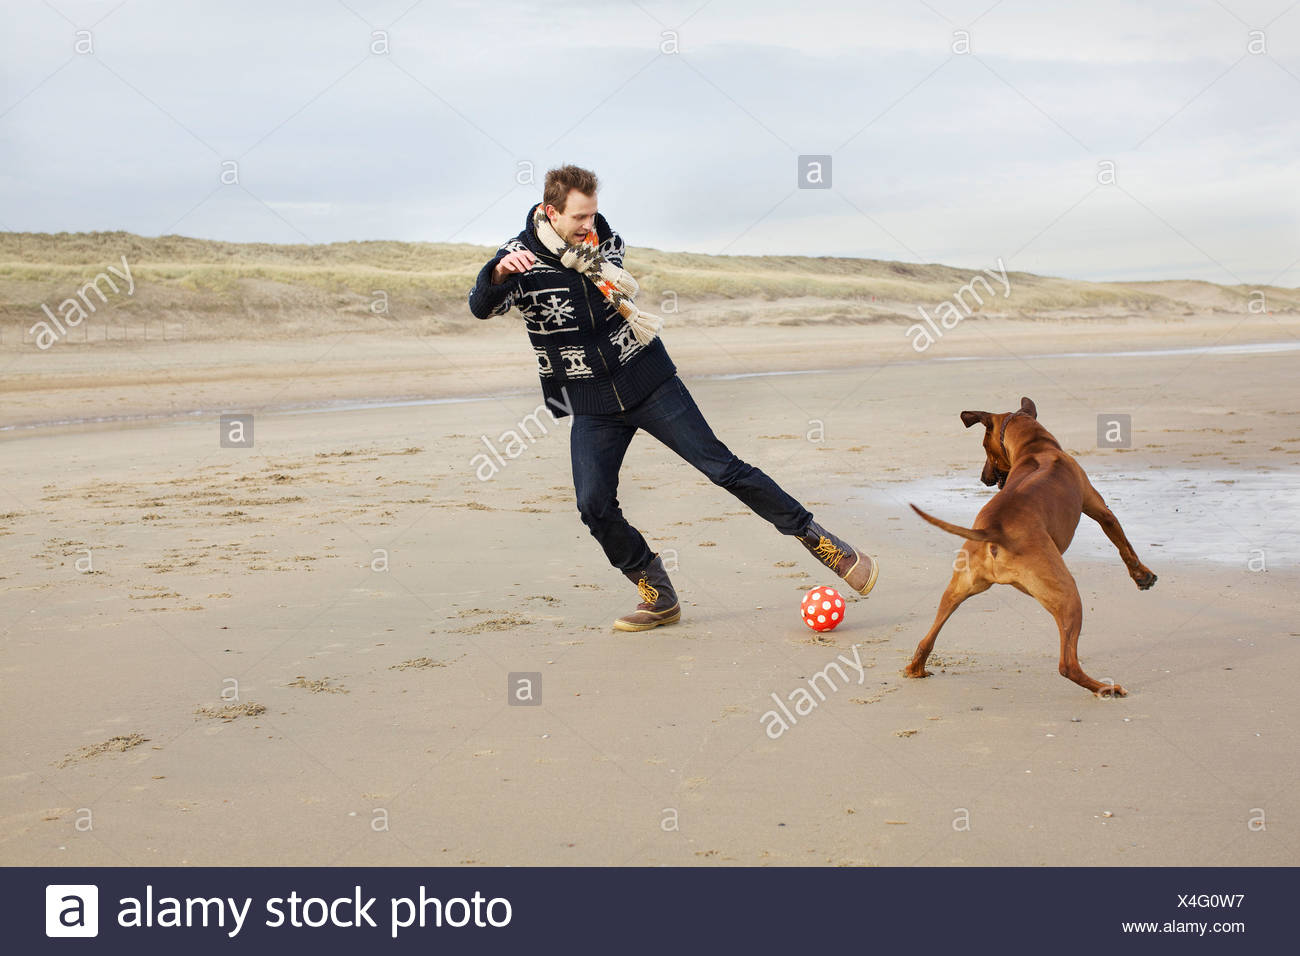 Mid adult man with dog playing football on beach, Bloemendaal aan Zee, Netherlands Stock Photo